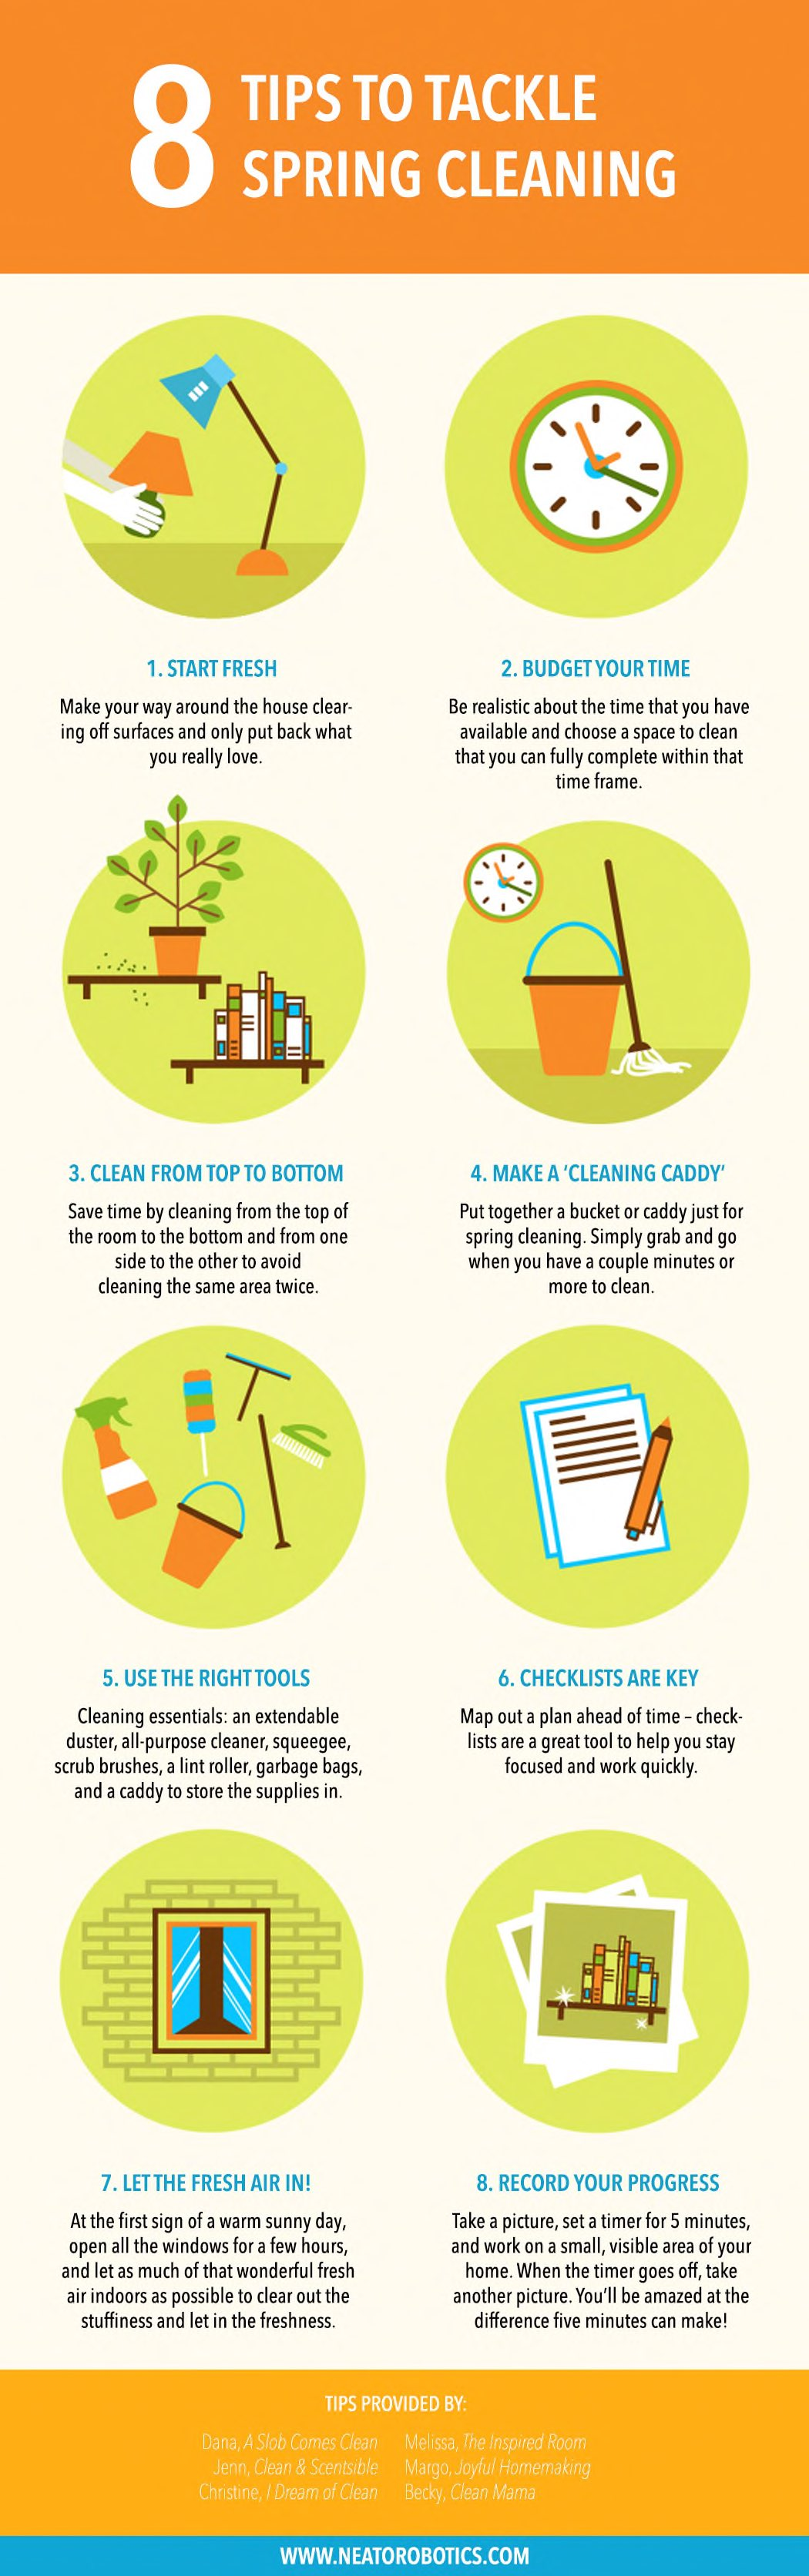 Spring-Cleaning-Infographic.jpg